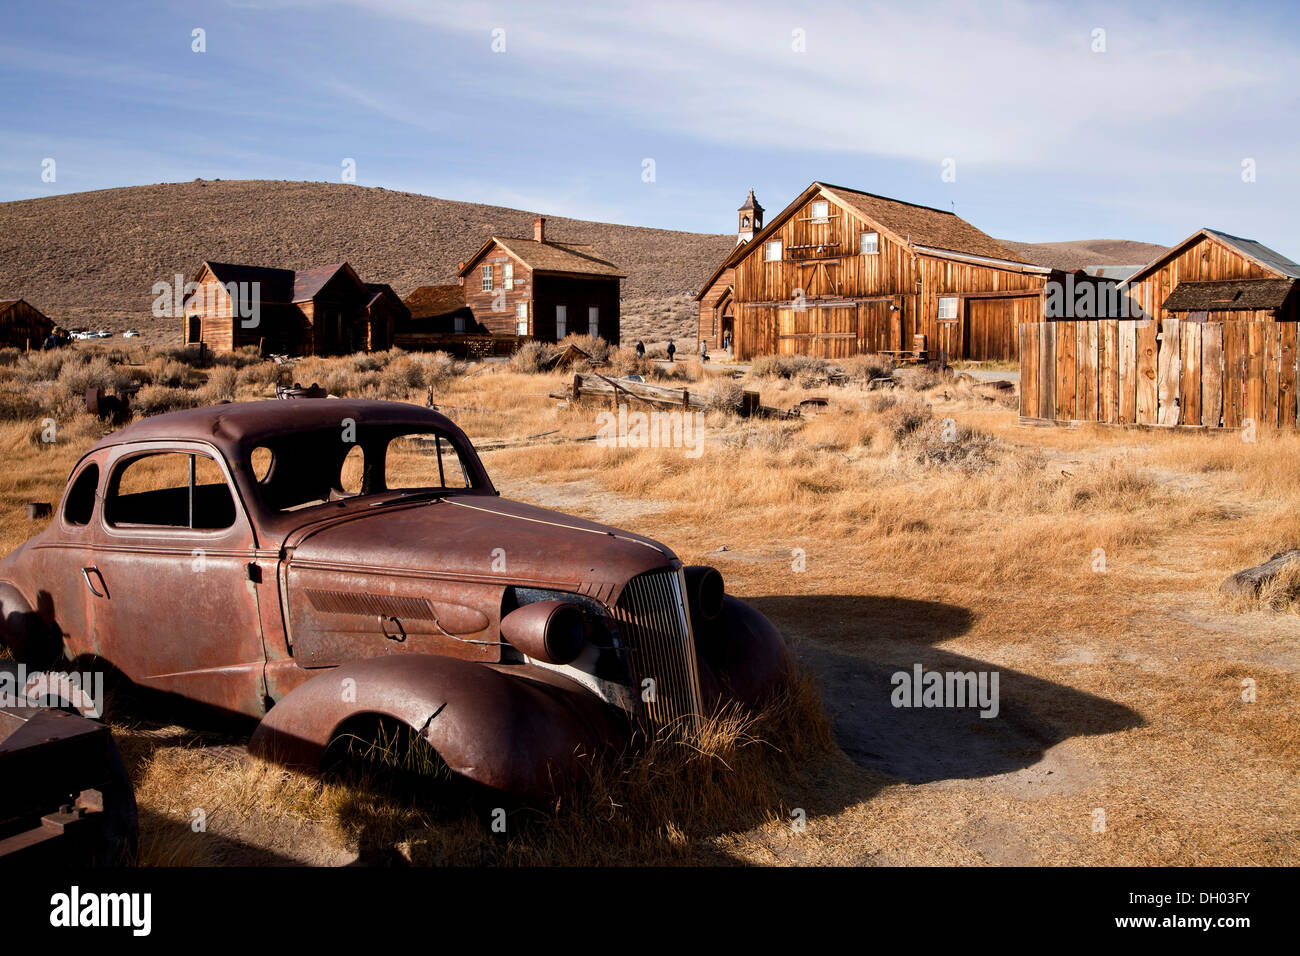 Ghost town of Bodie, Bodie, California, United States - Stock Image